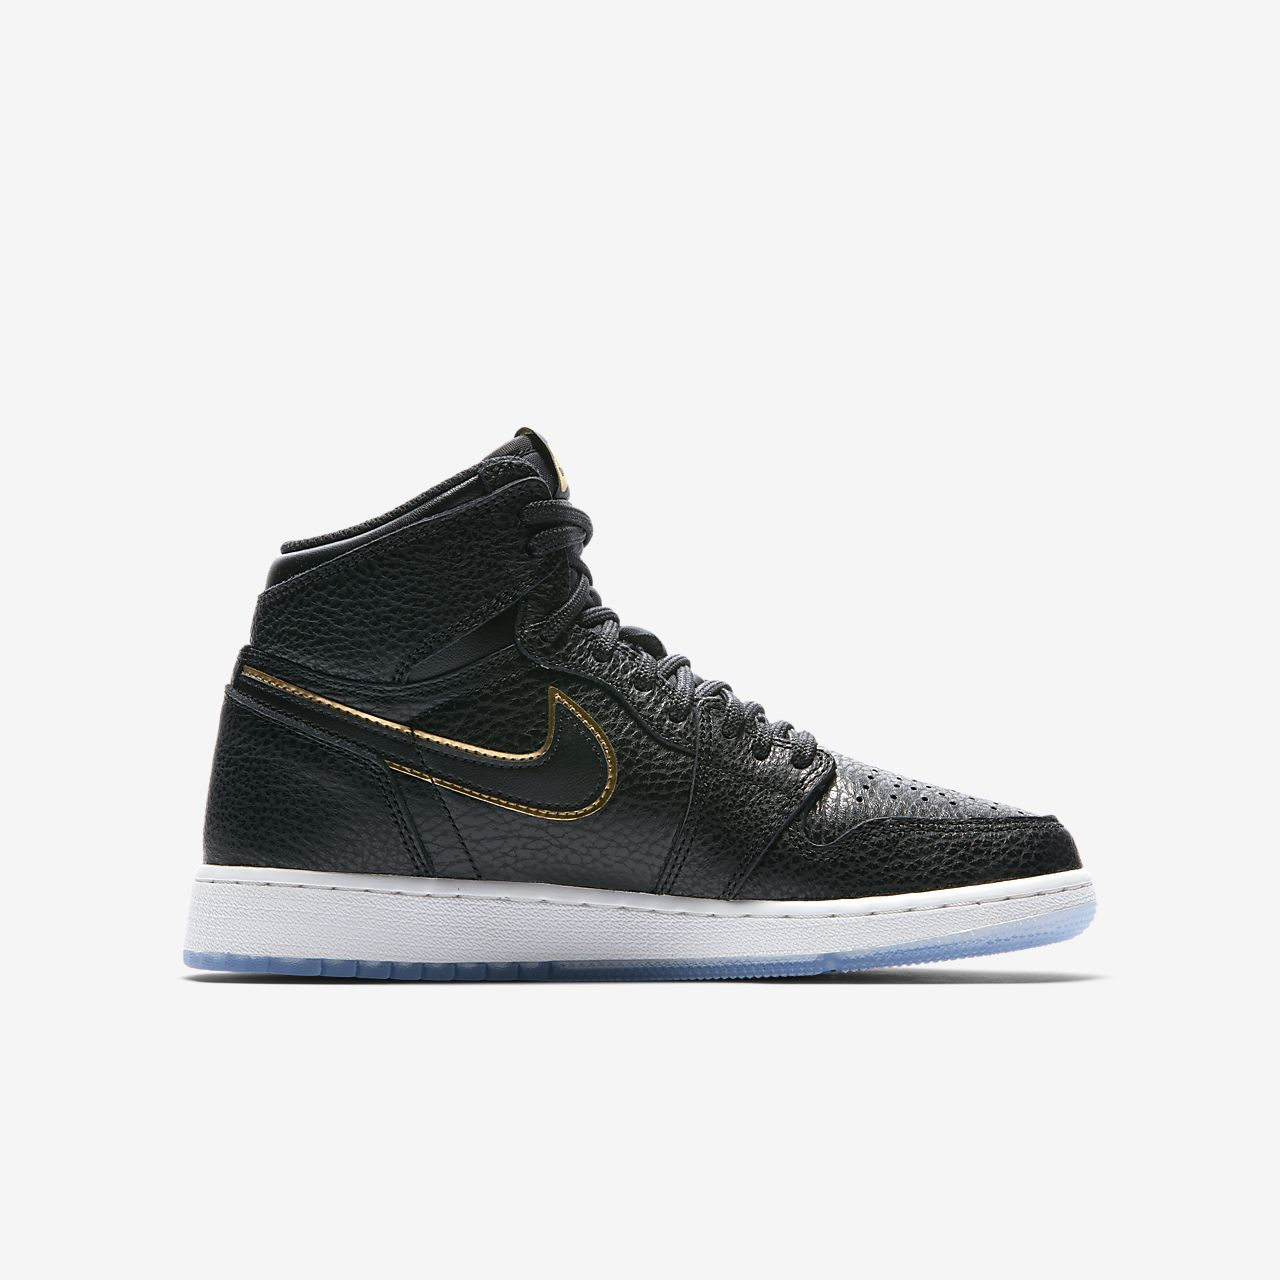 jordan air 1 retro high og nz